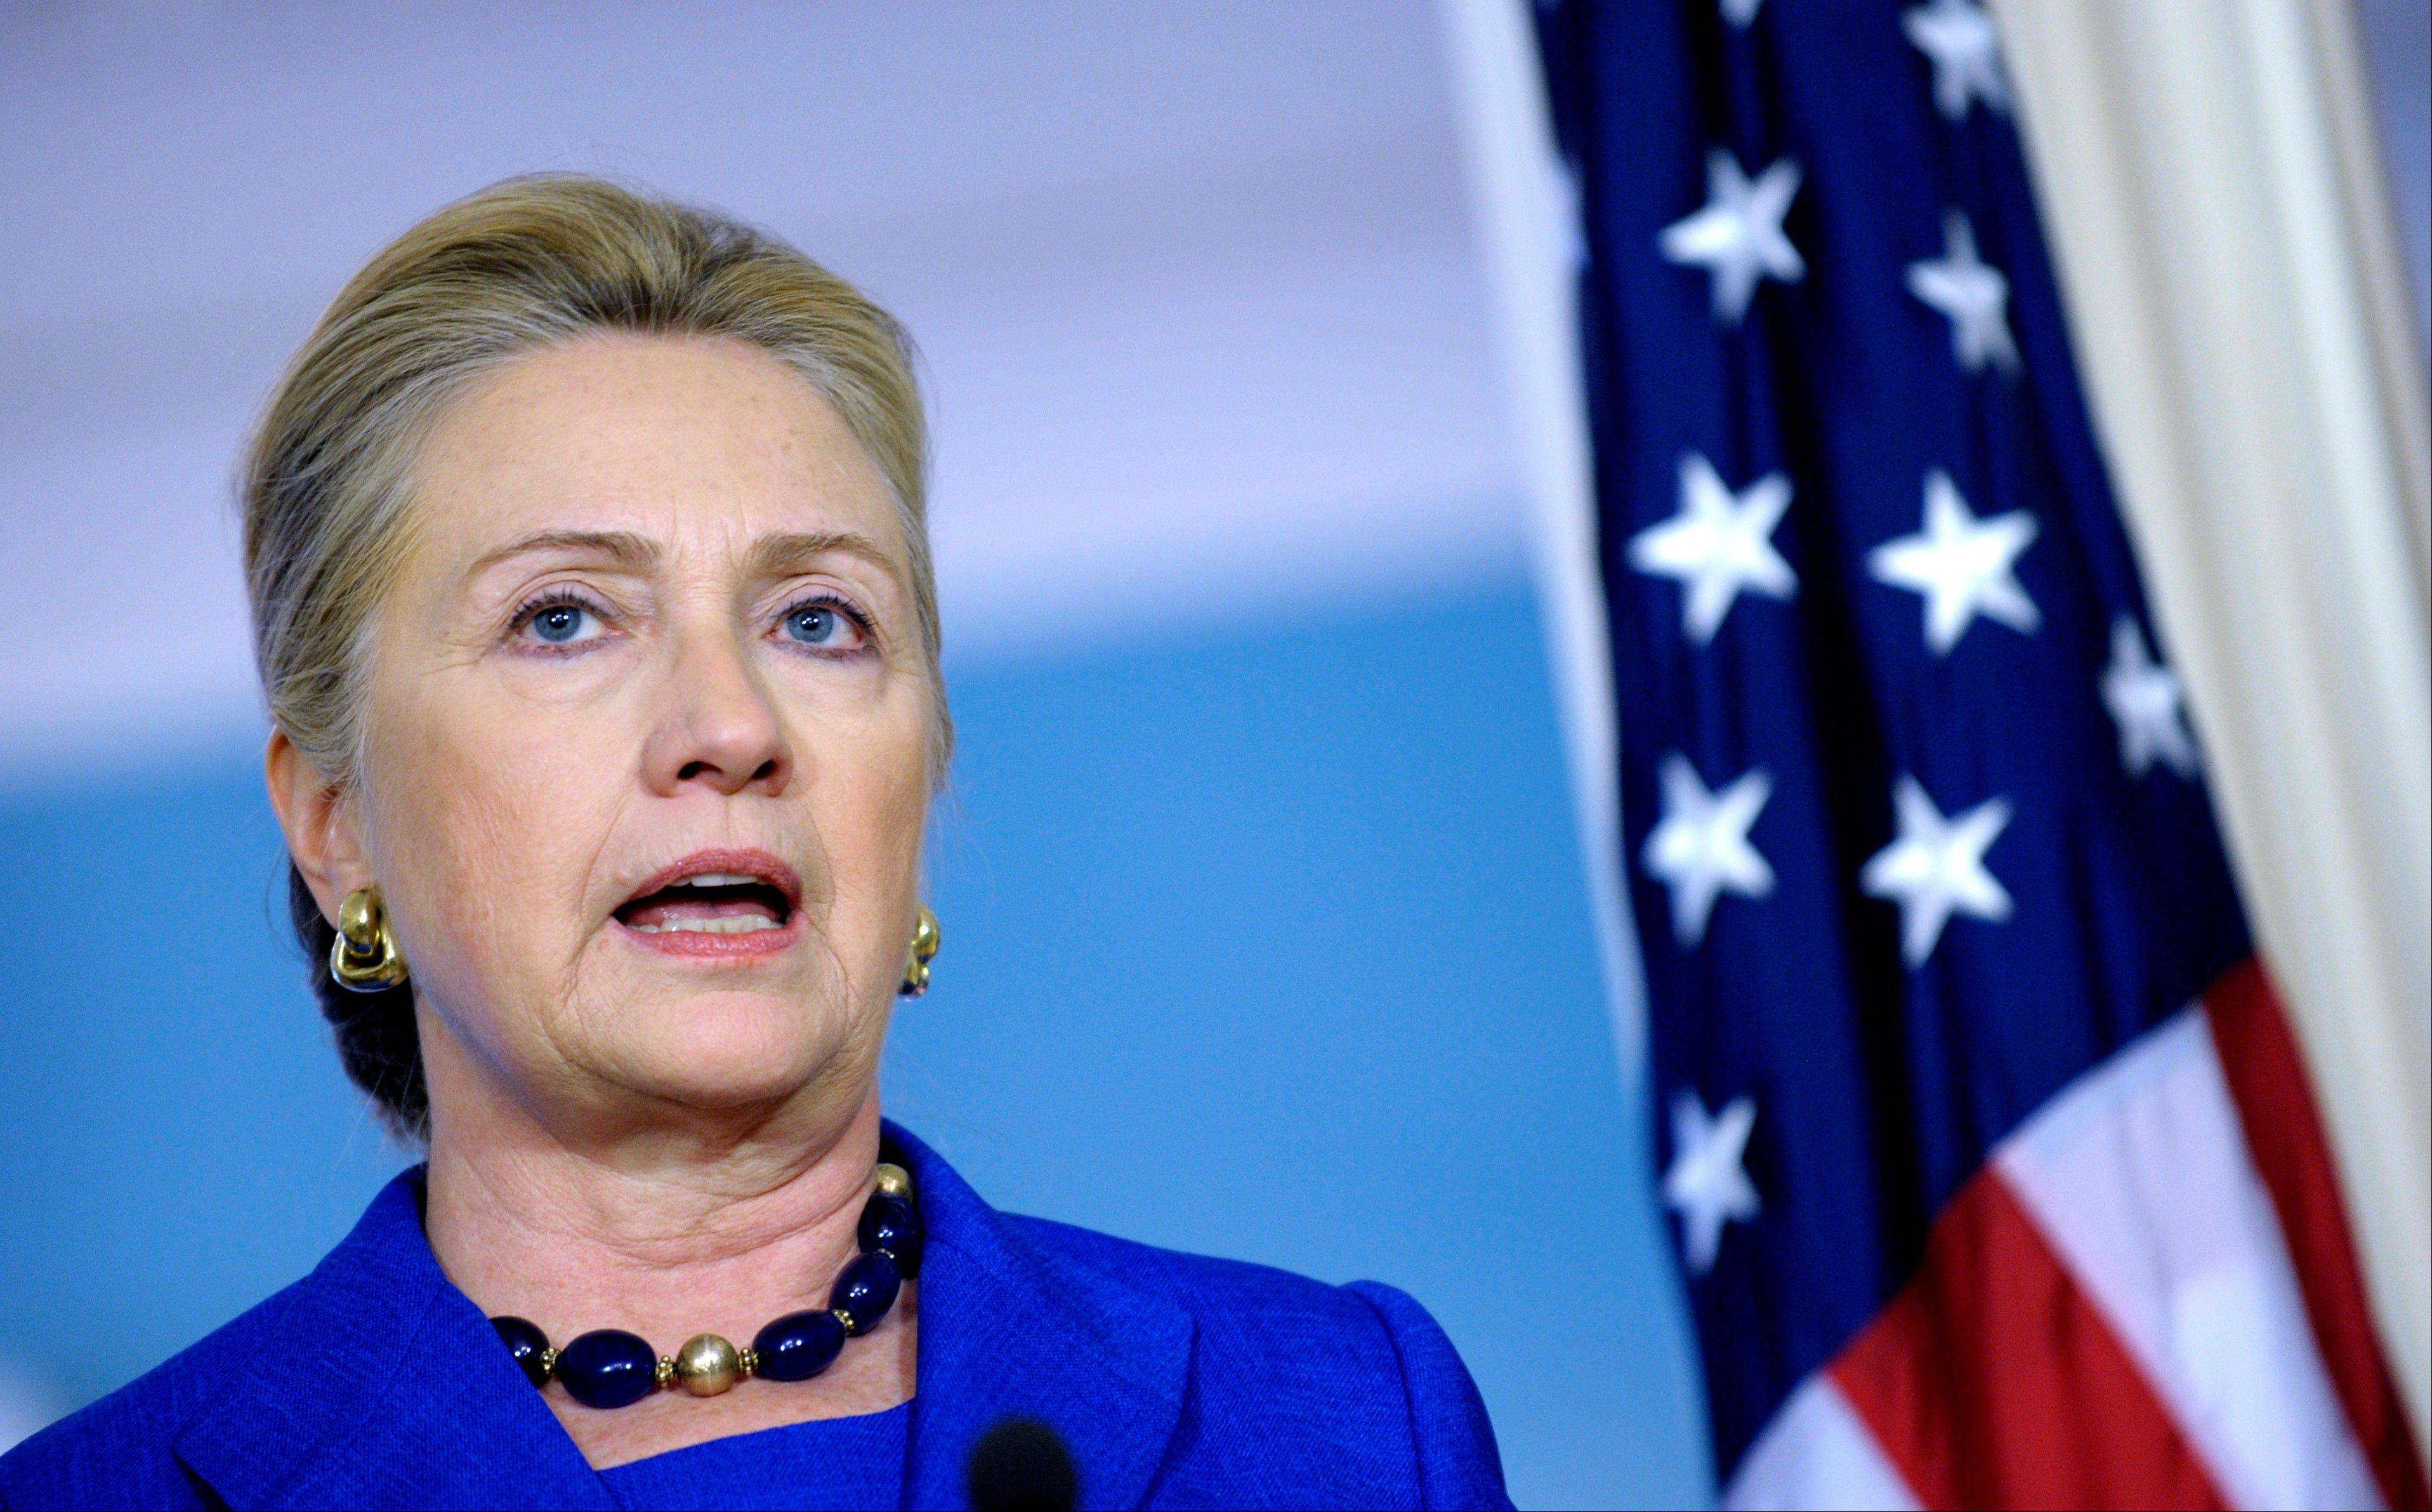 Secretary of State Hillary Rodham Clinton answers a reporter's question on Libya during a joint news conference with Brazil's Foreign Minister Antonion de Aguiar Patriota on Wednesday at the State Department in Washington.